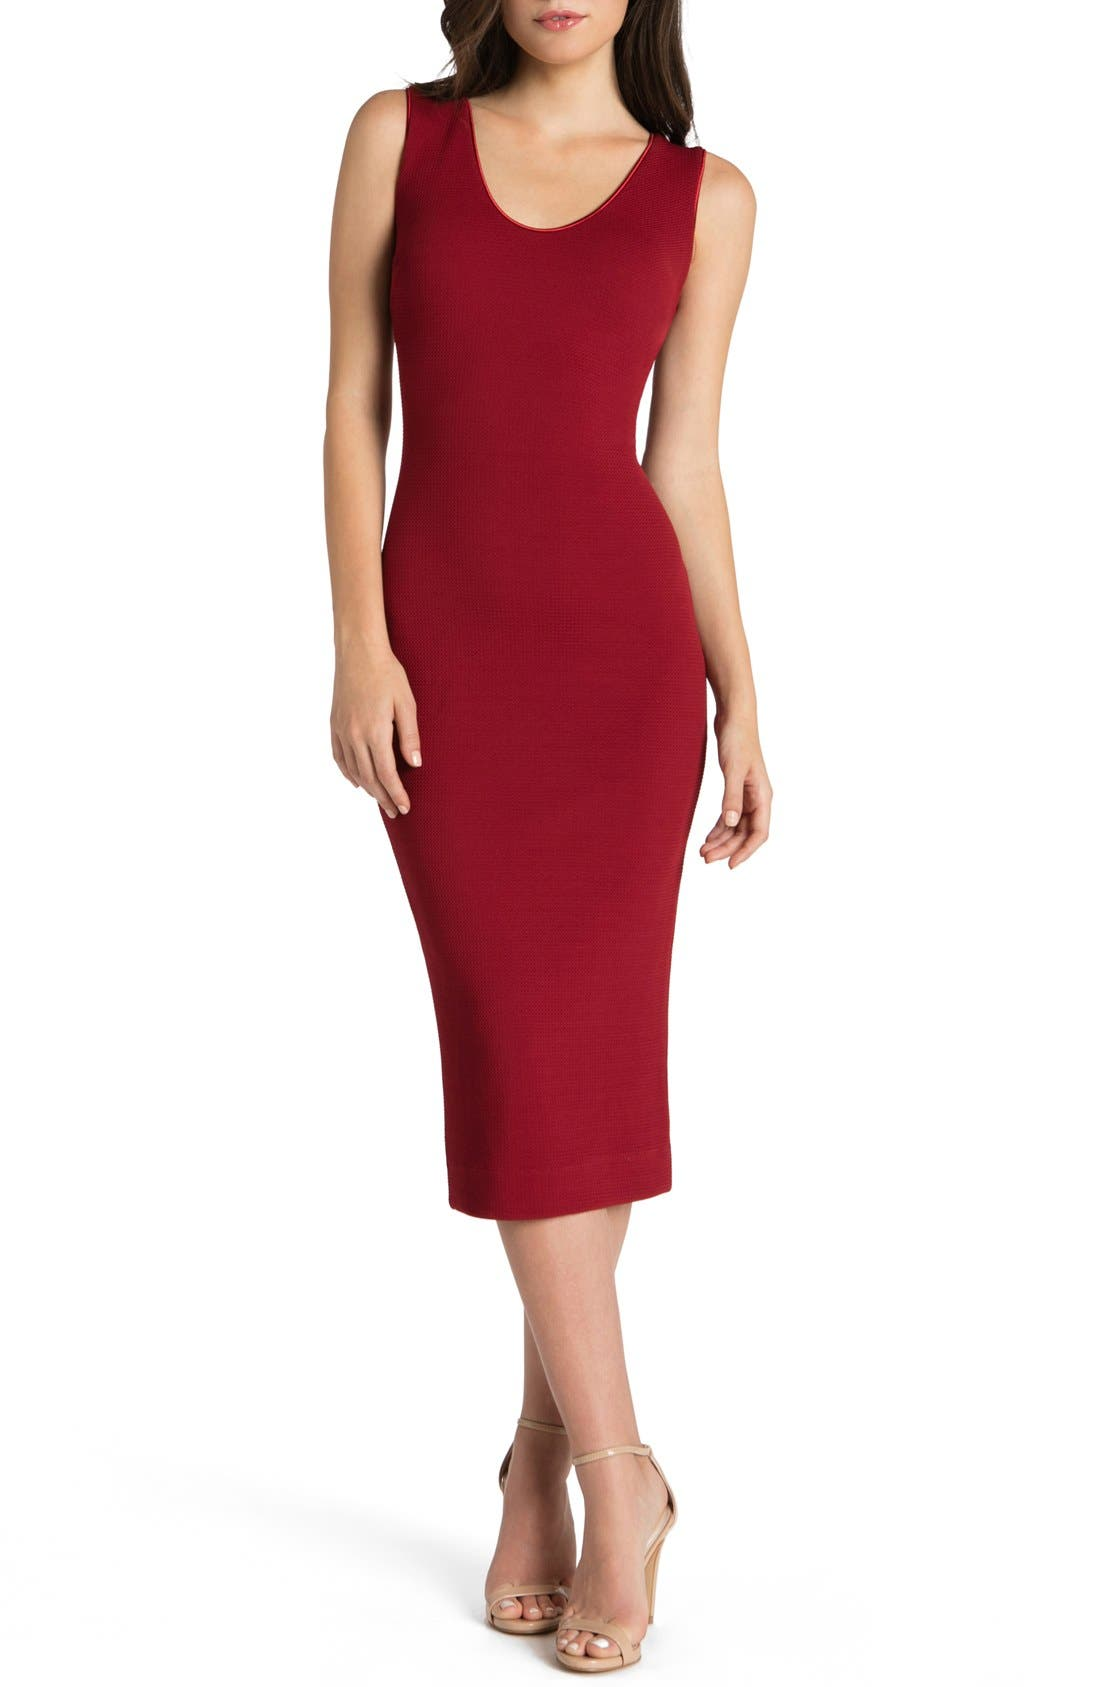 DRESS THE POPULATION Cori Stretch Body-Con Dress